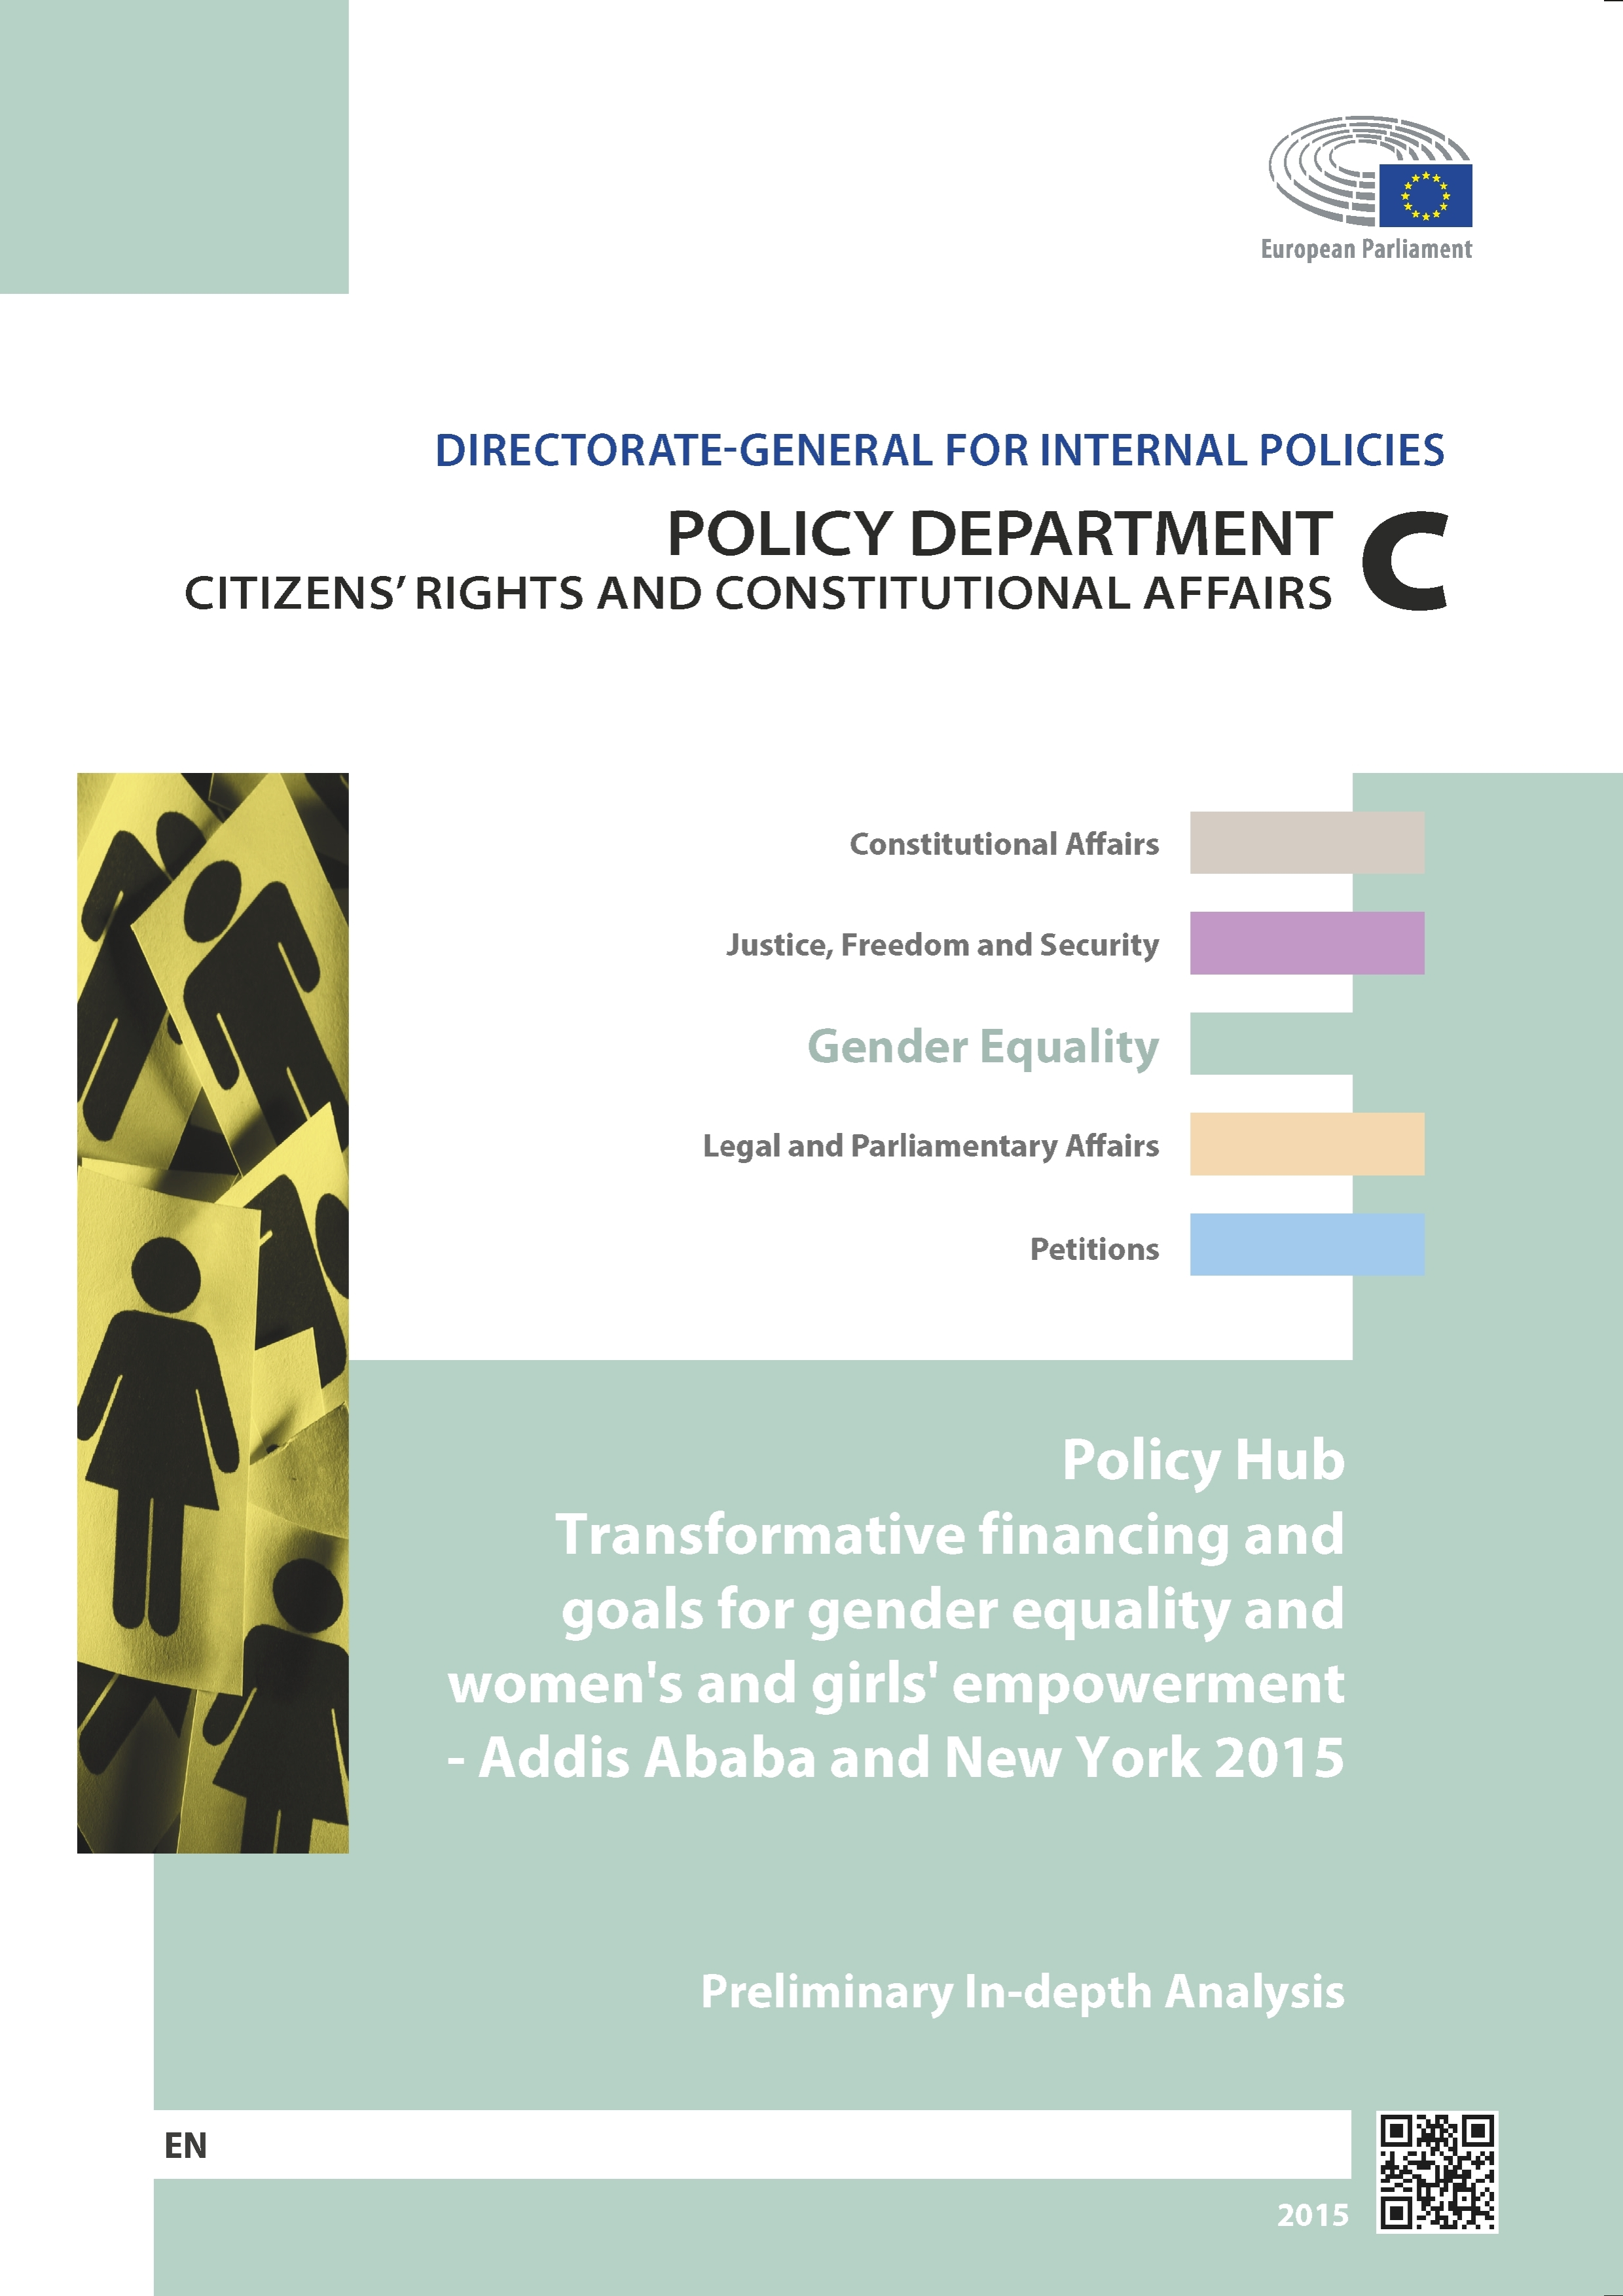 Policy hub transformative financing and goals gender equality women's and girls empowerment Addis Ababa New York 2015